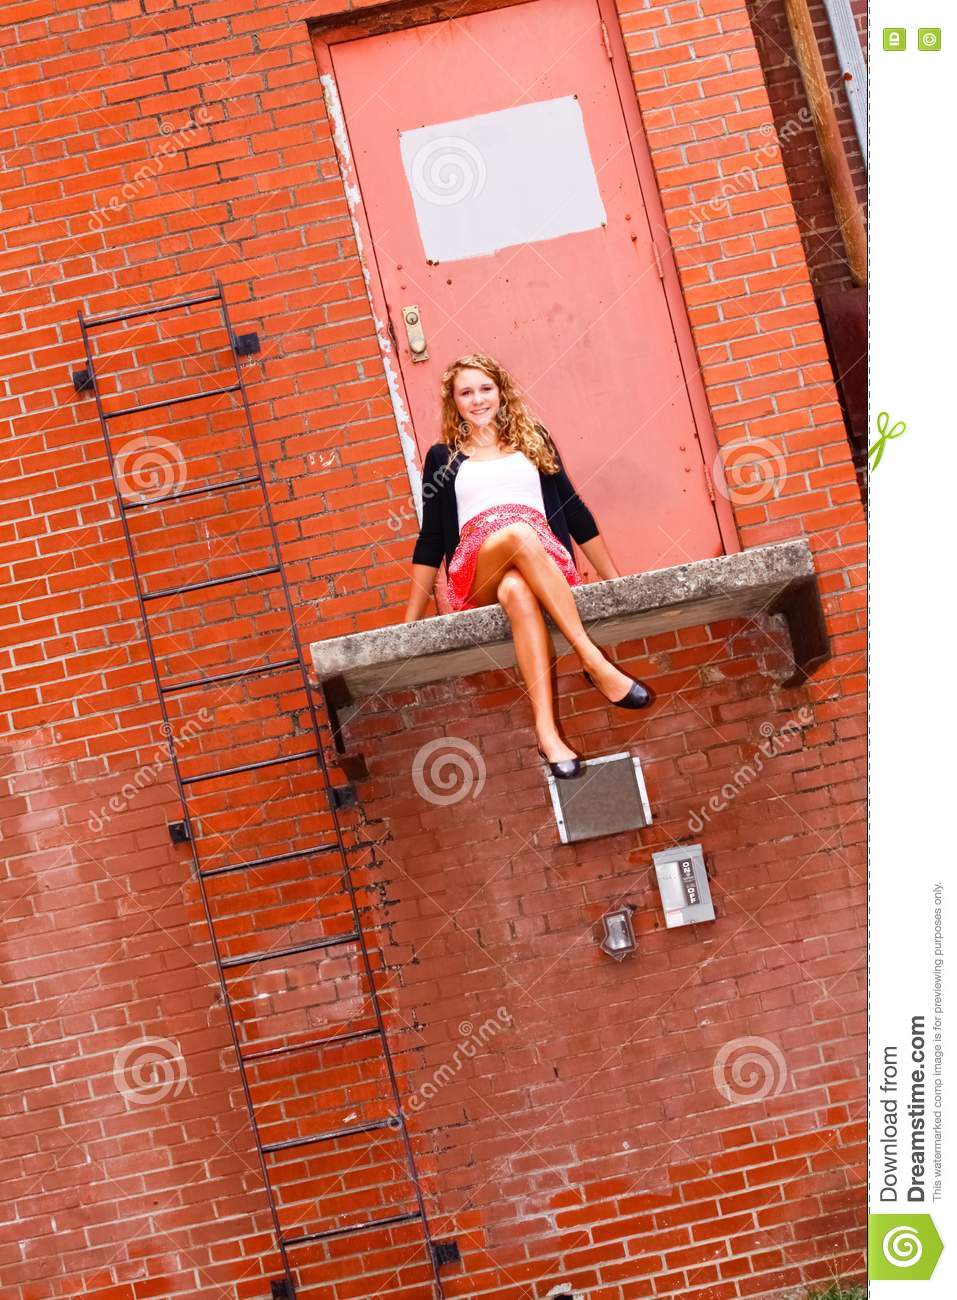 Black sweater sitting on a ledge in front of a red brick wall and door